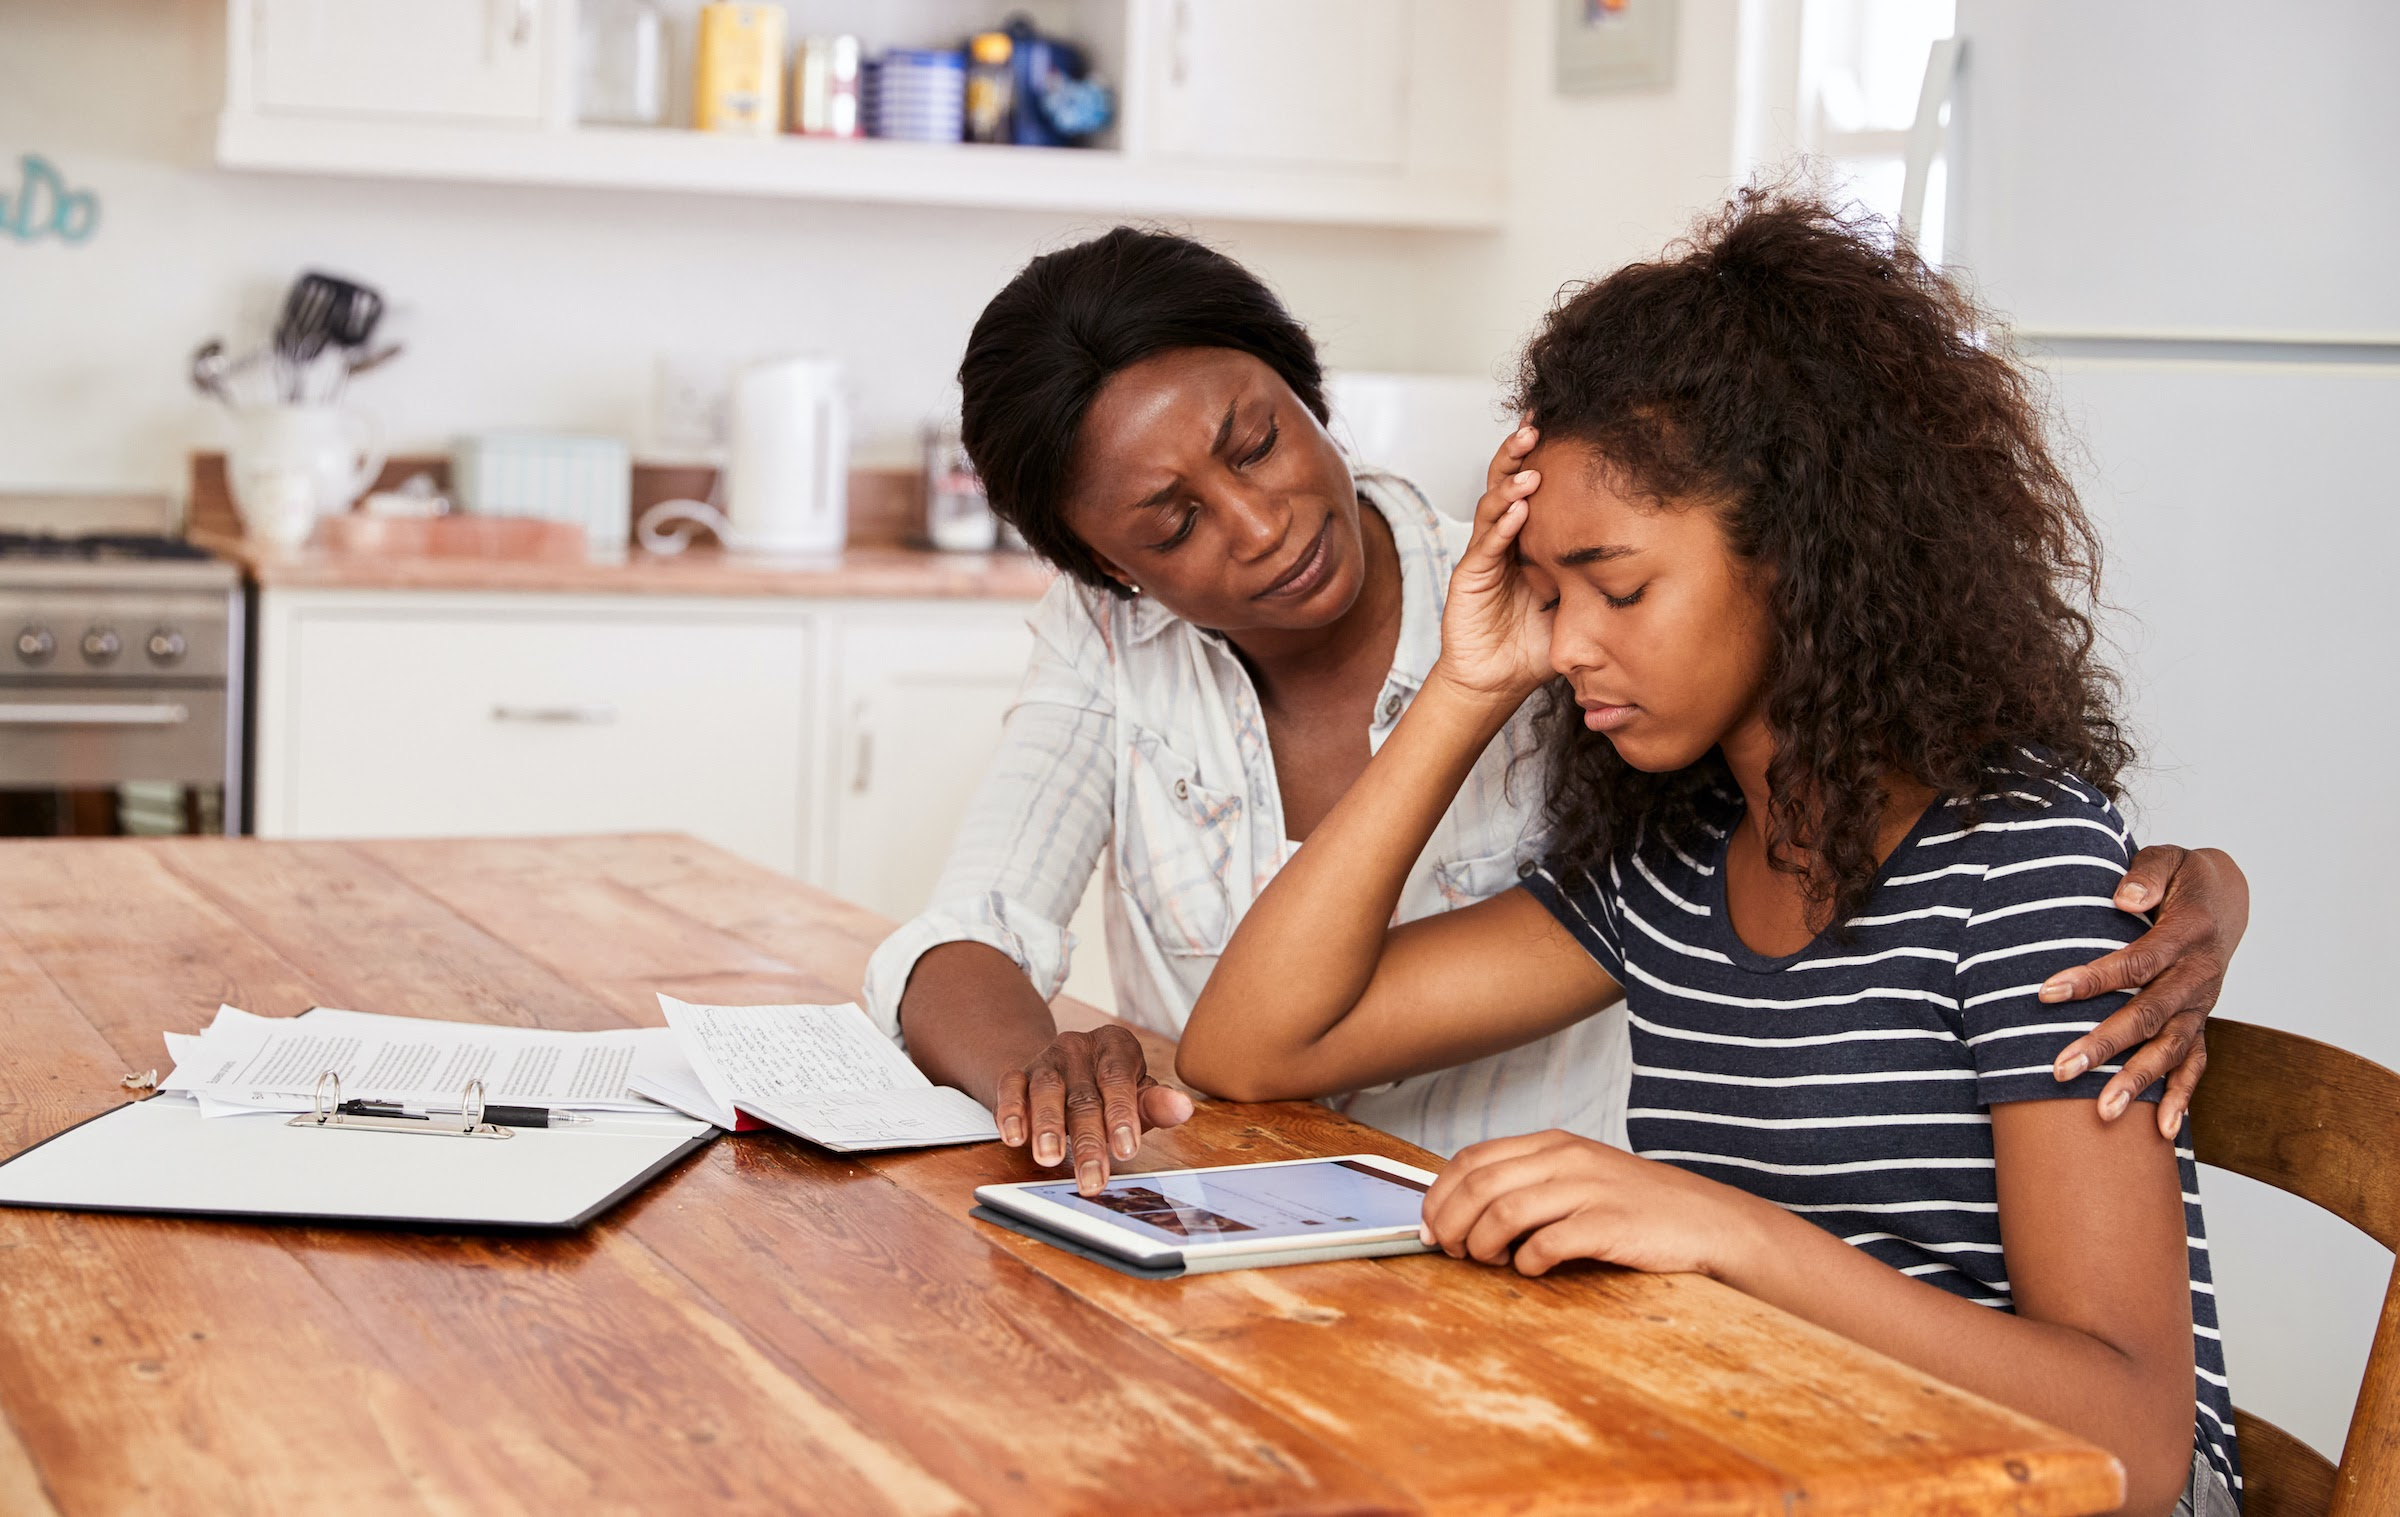 Mother helping frustrated daughter with schoolwork